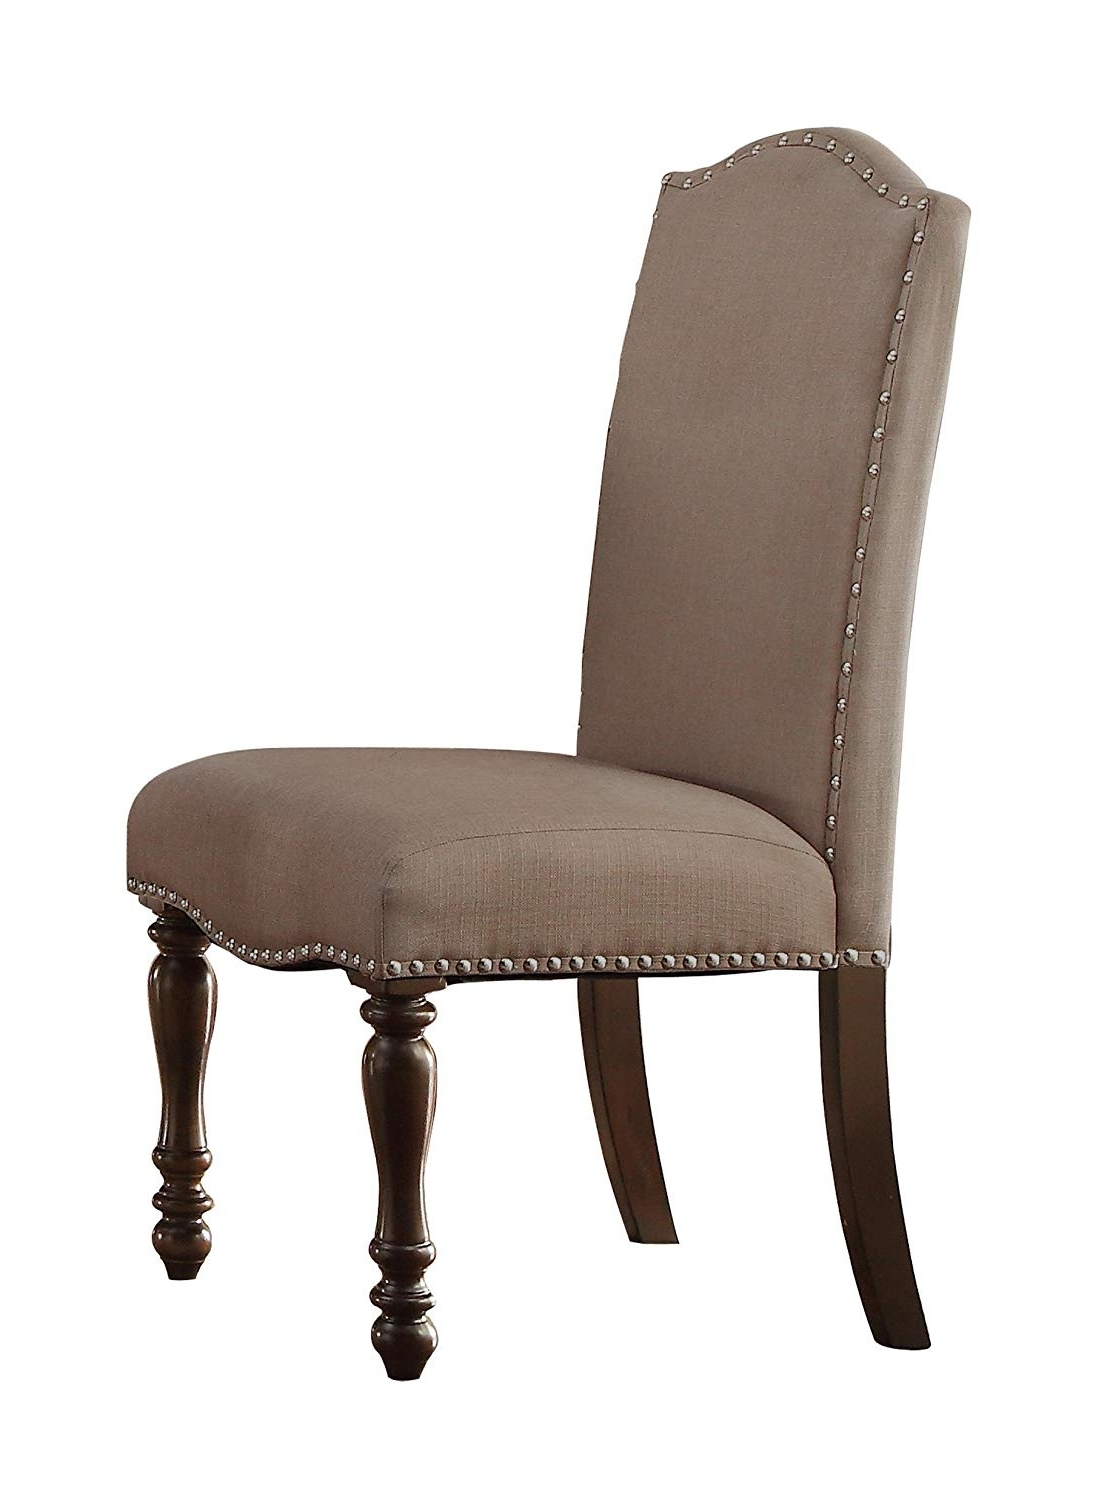 Fashionable Fabric Dining Chairs Intended For Homelegance Benwick Upholstered Fabric Dining Chairs With Nail Heads Trim  Beige, Set Of  (View 20 of 25)